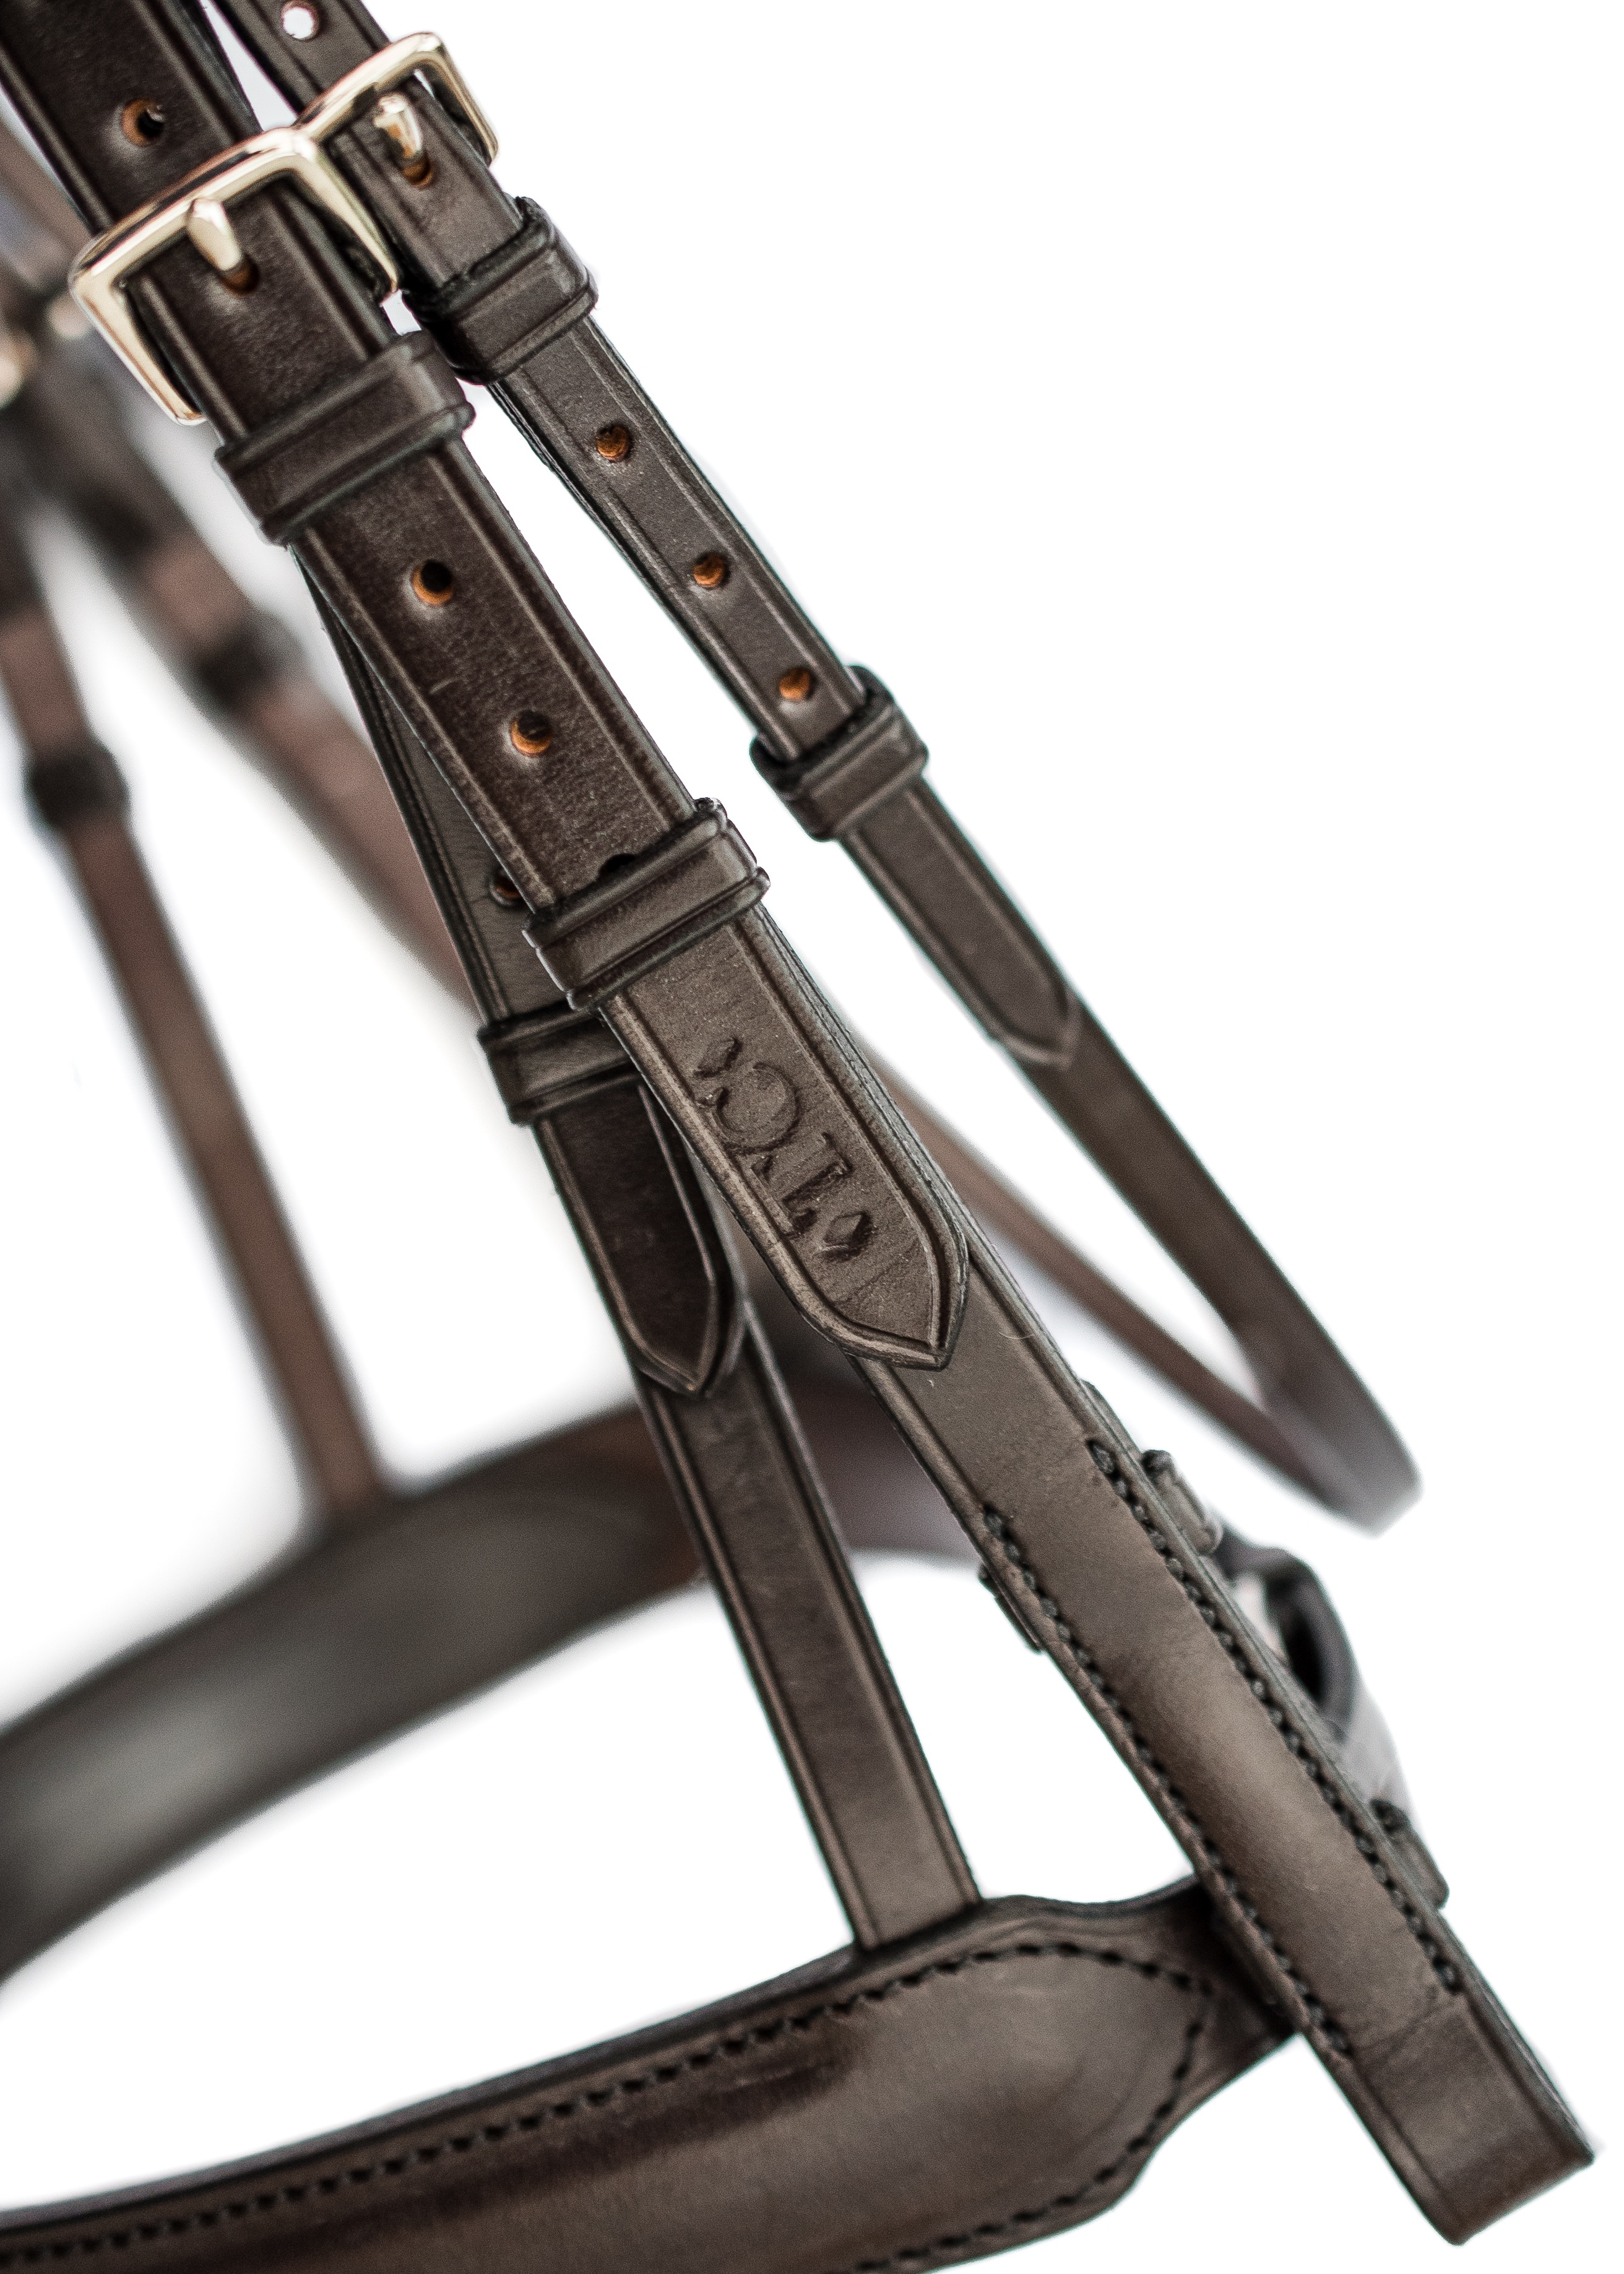 Anatomical bridle in top quality English leather by TC Leatherwork